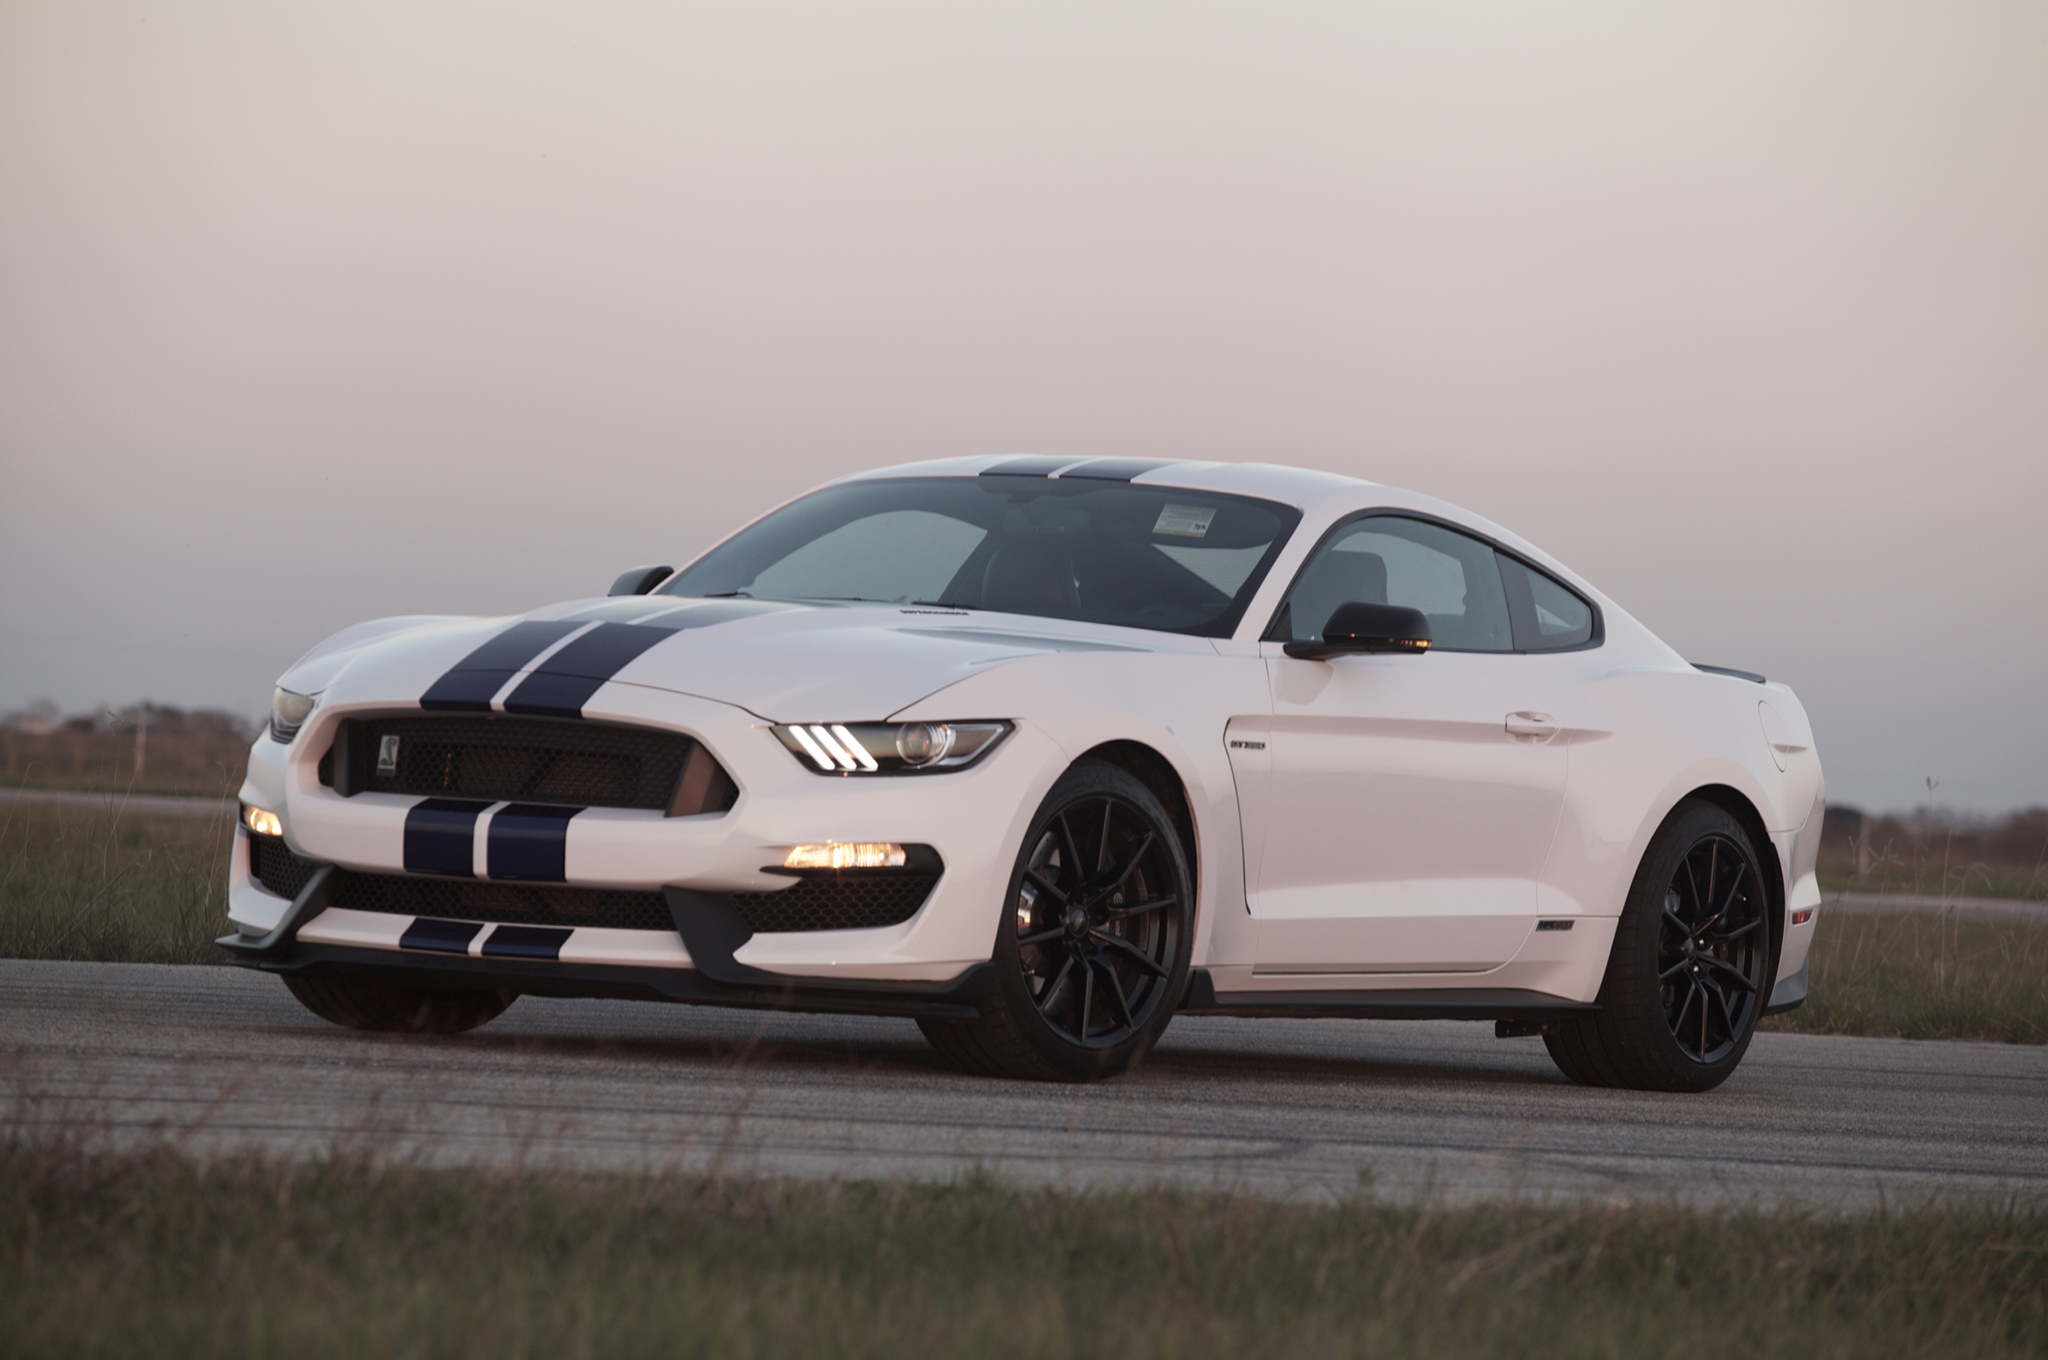 Hennessey Performance Shelby Mustang GT350 - Autovisie.nl -1